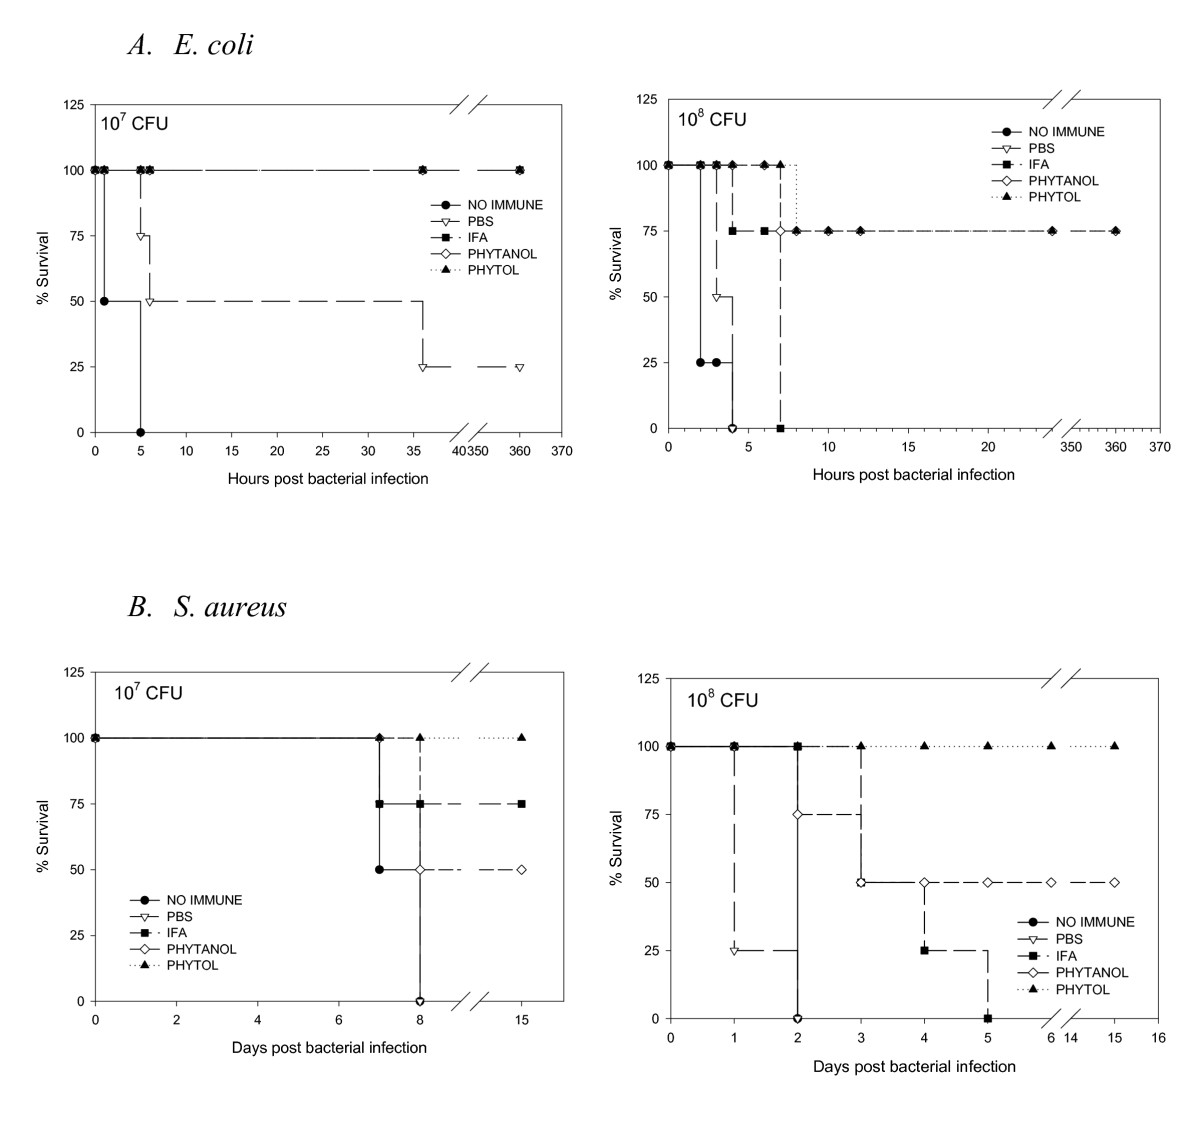 https://static-content.springer.com/image/art%3A10.1186%2F1476-8518-4-5/MediaObjects/12949_2006_Article_26_Fig5_HTML.jpg